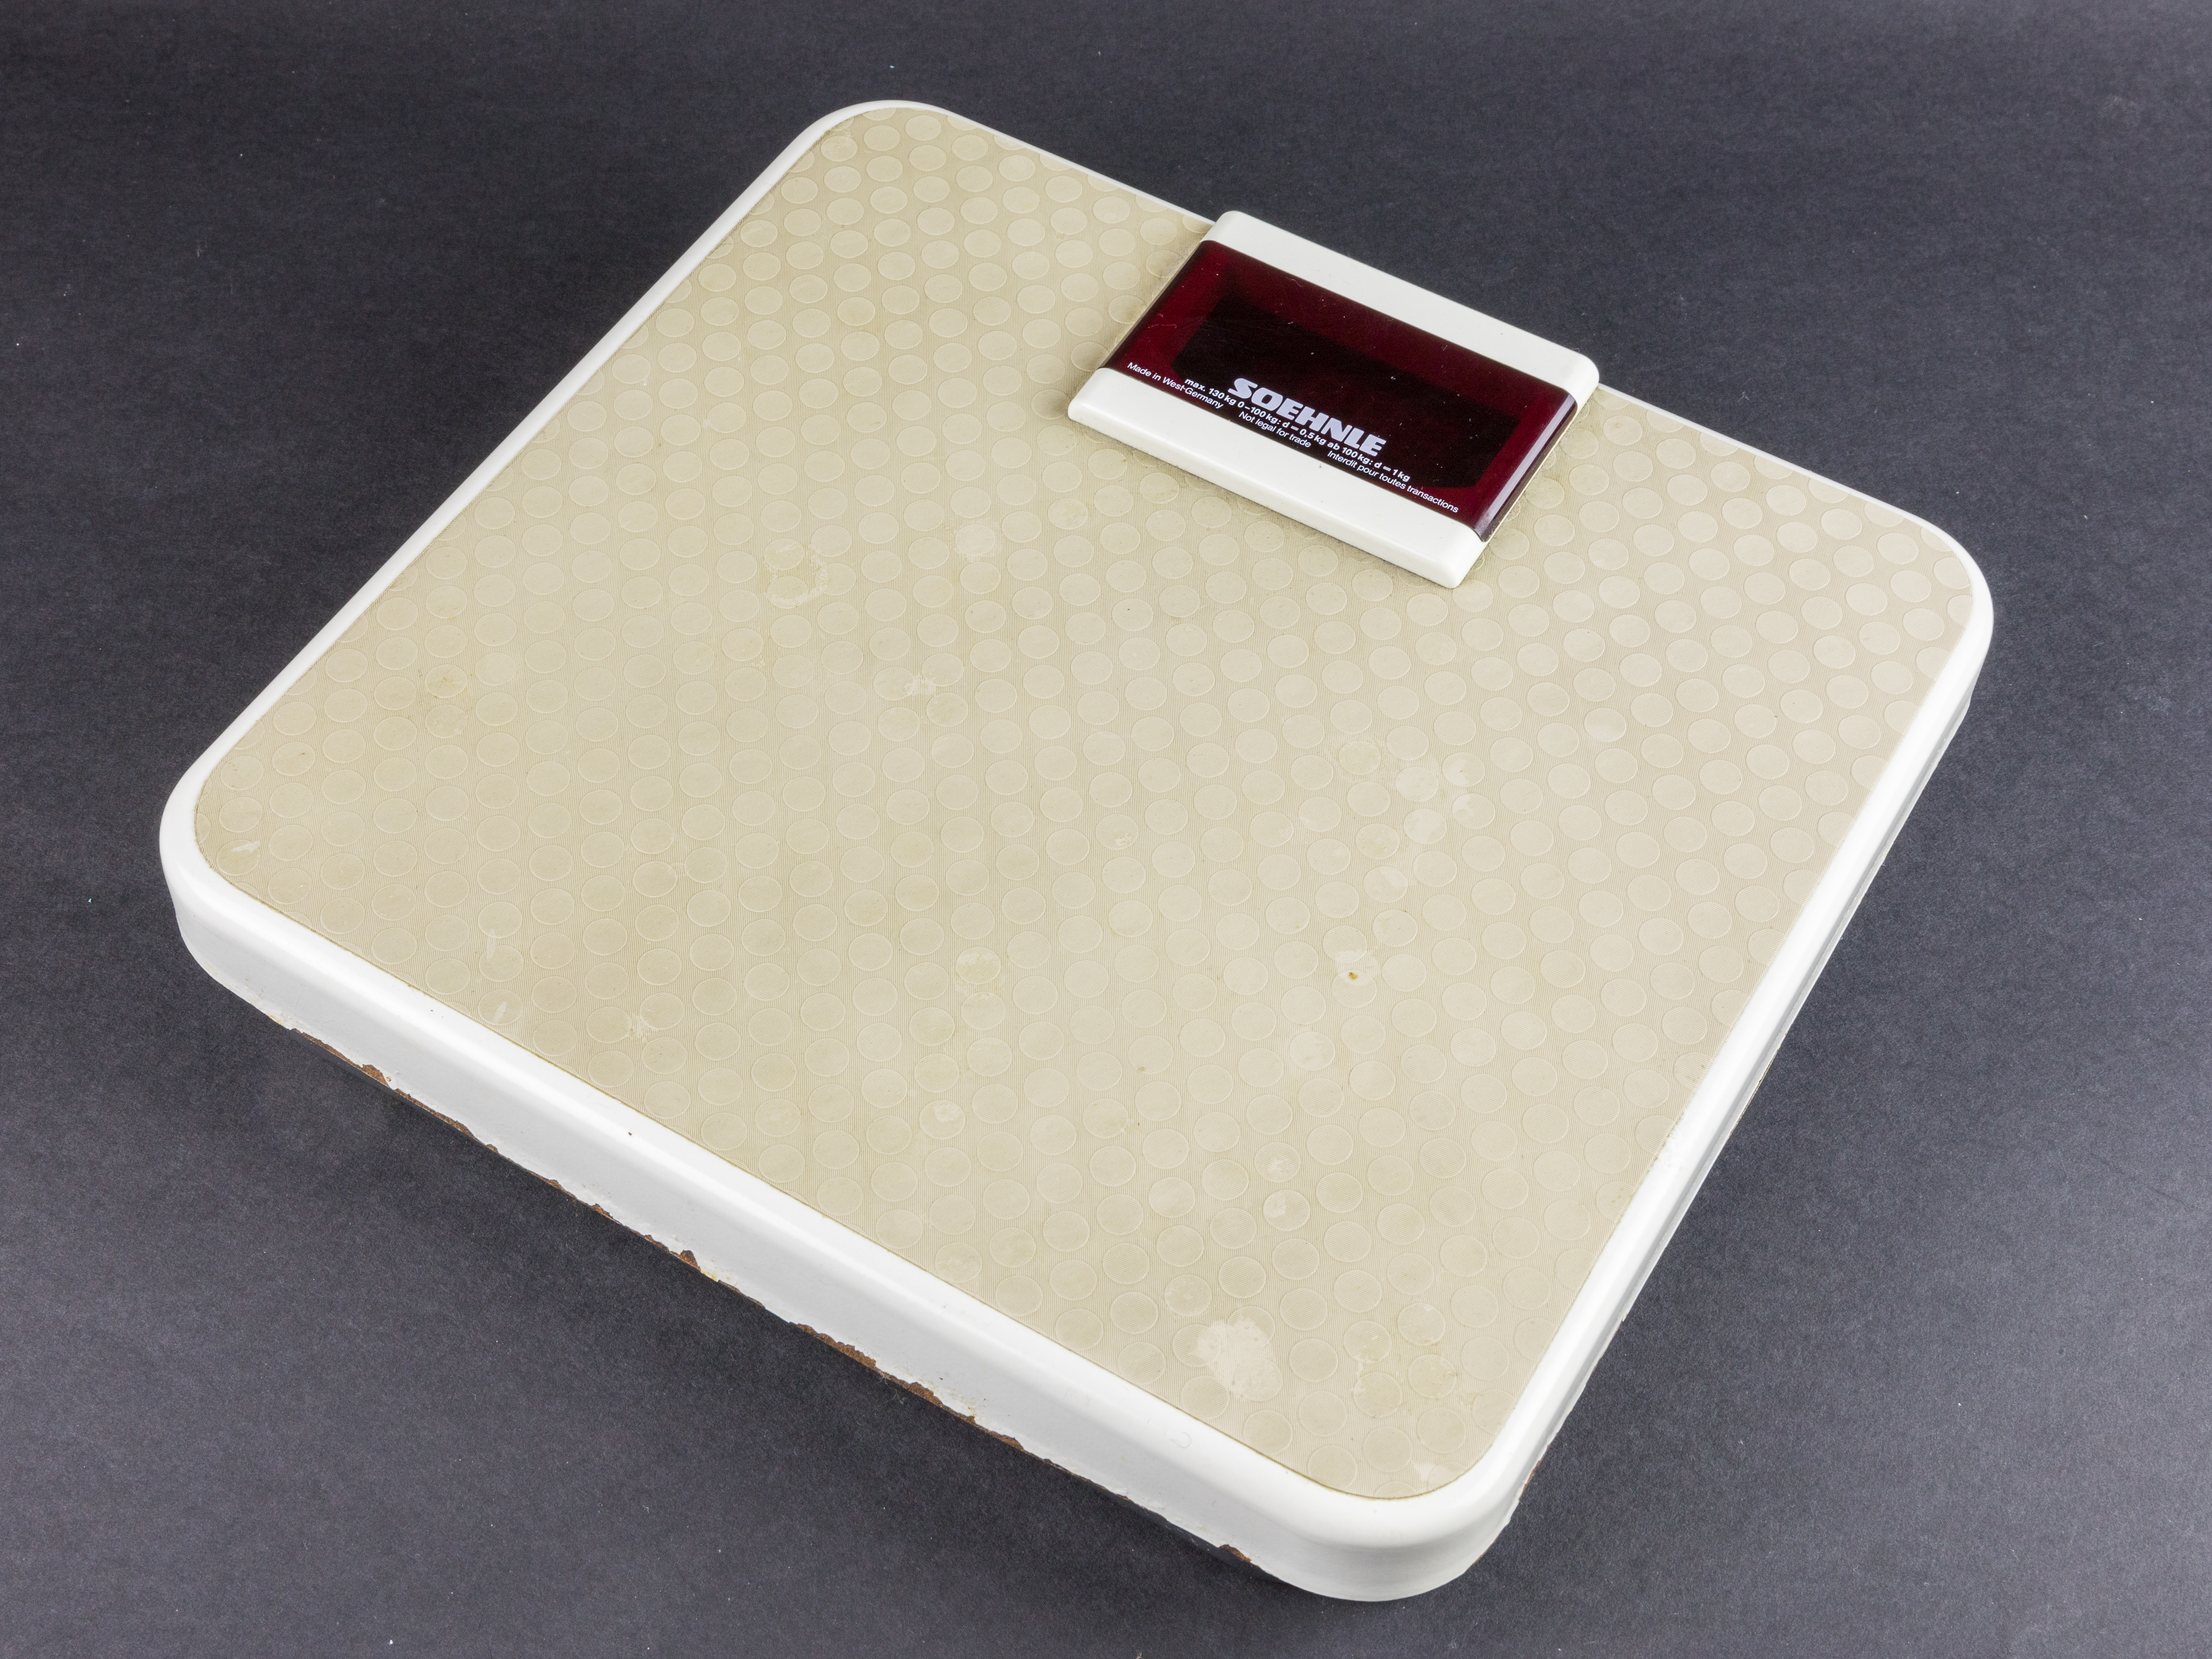 personal ruler category correct measuring medicalpersonal cws scales length medical bathroom product with digital baby weight weighing attached